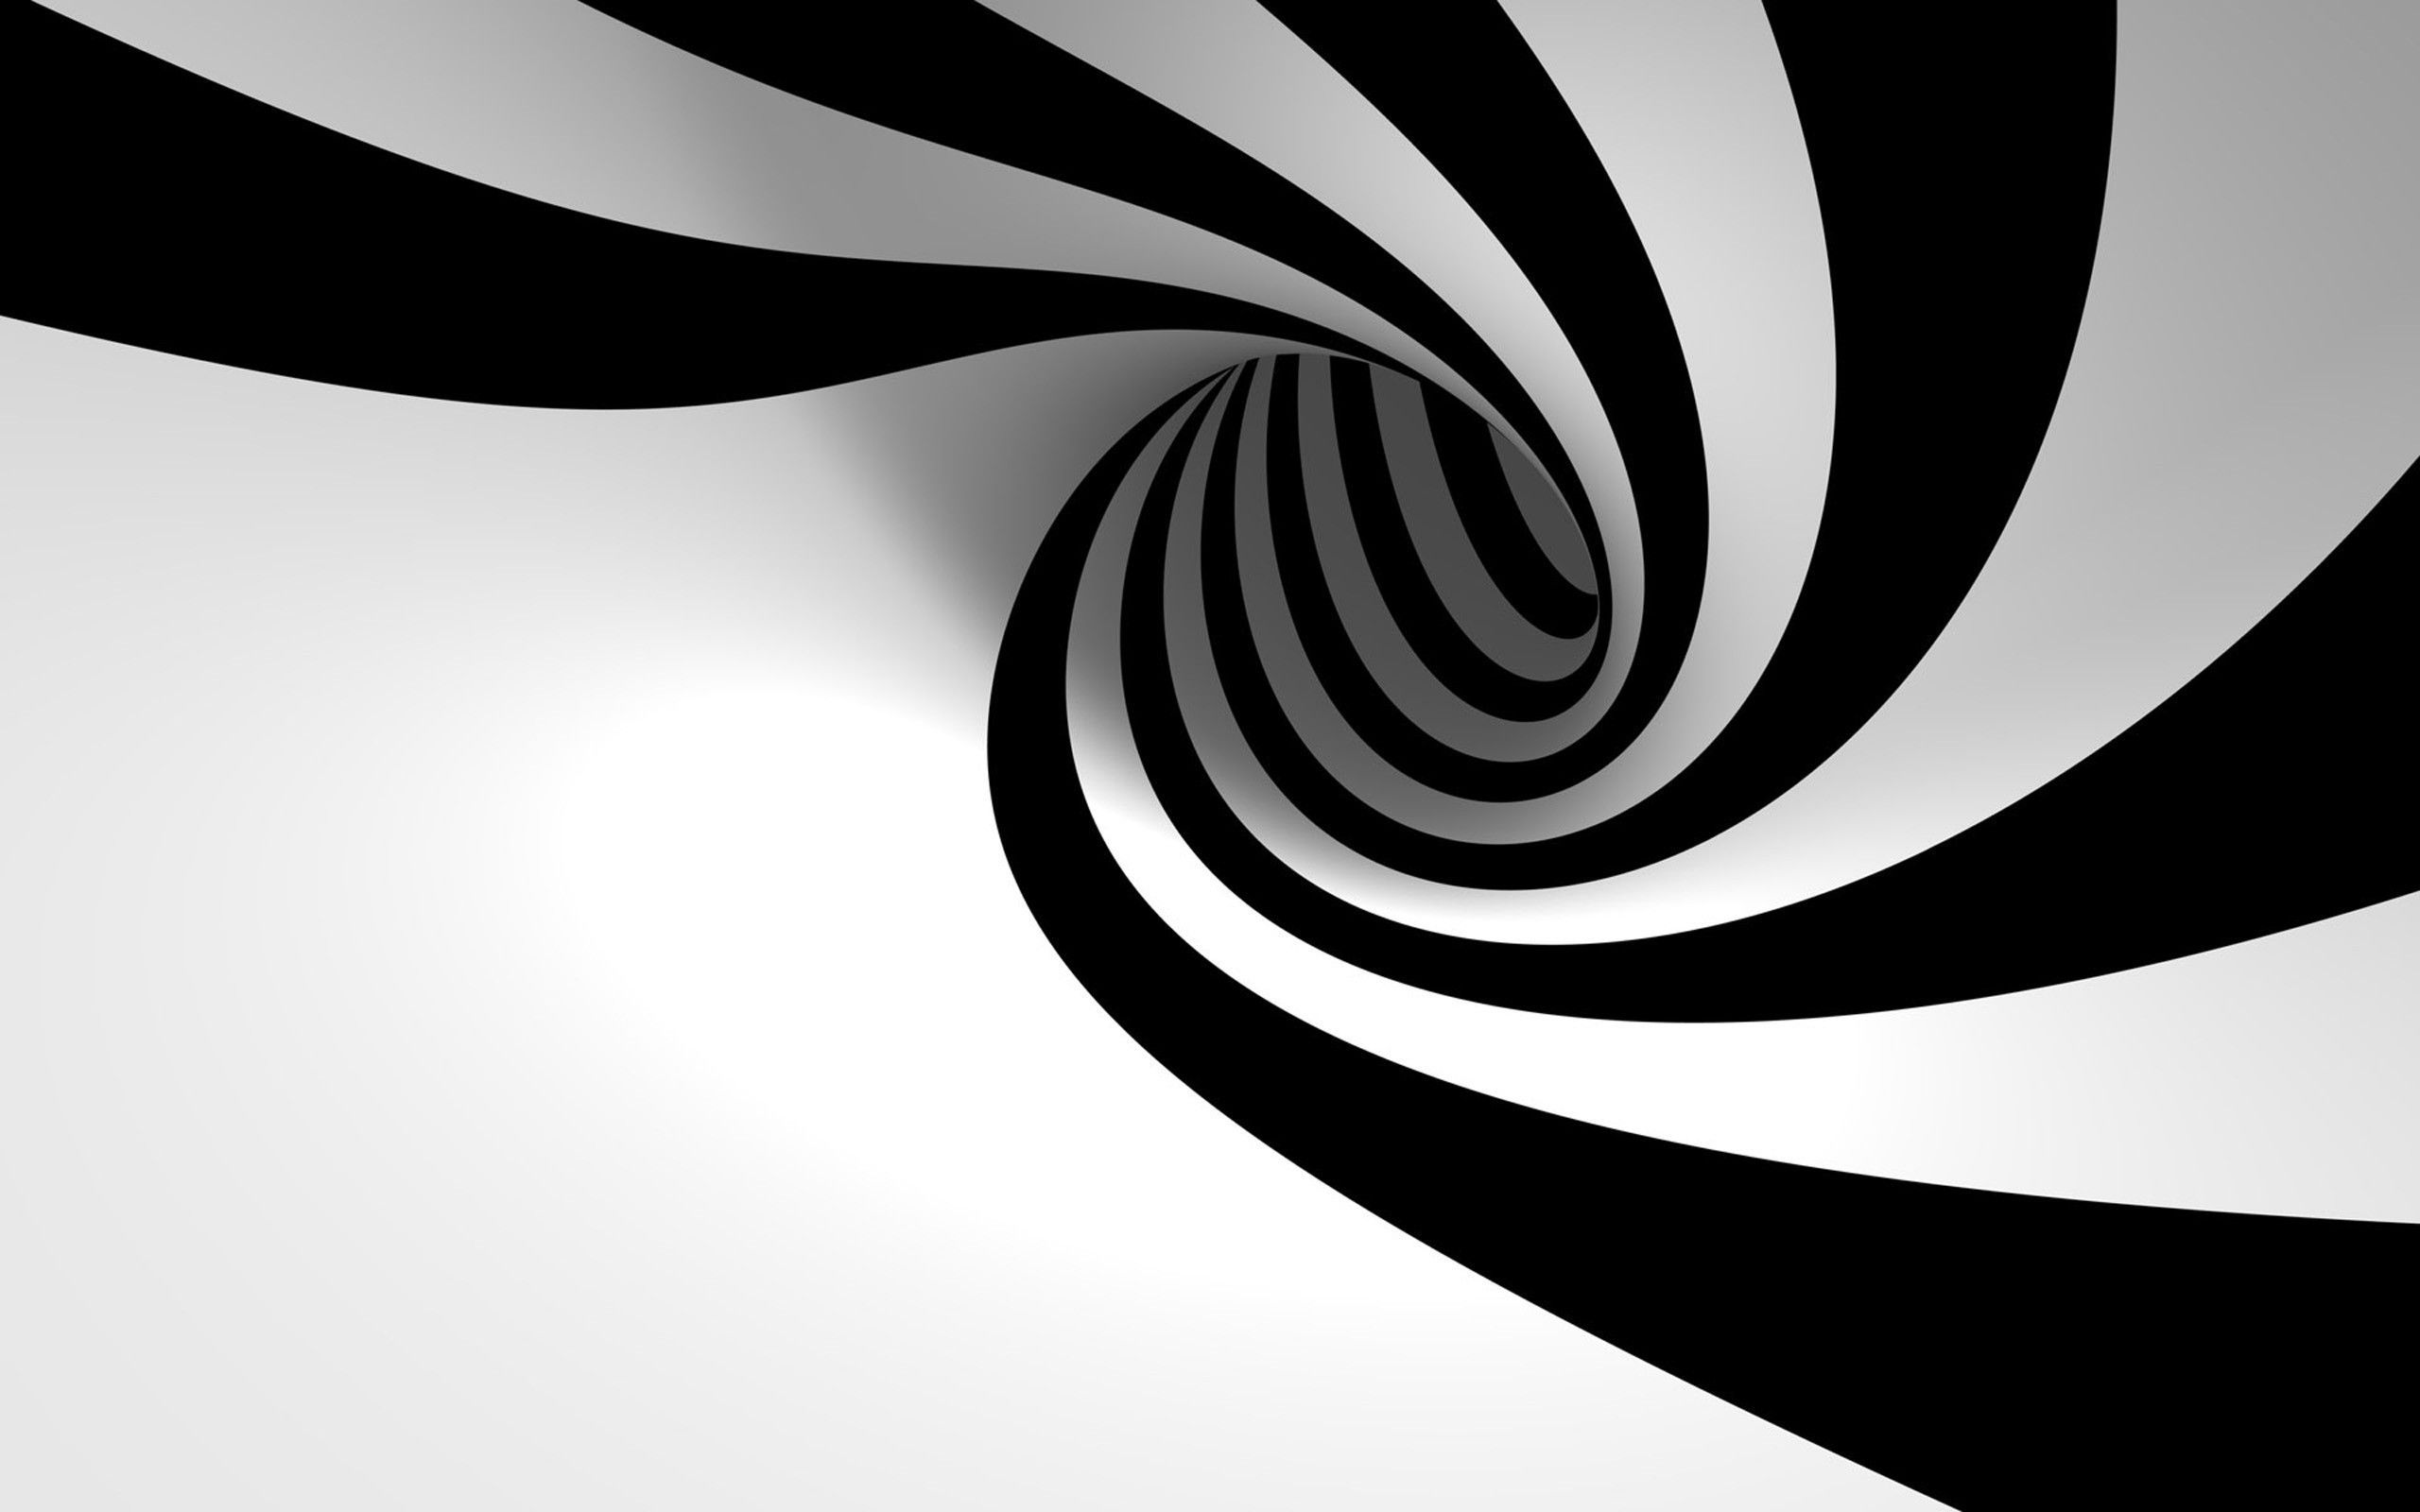 Black And White Stripes Swirl Wallpaper And Stock Photo